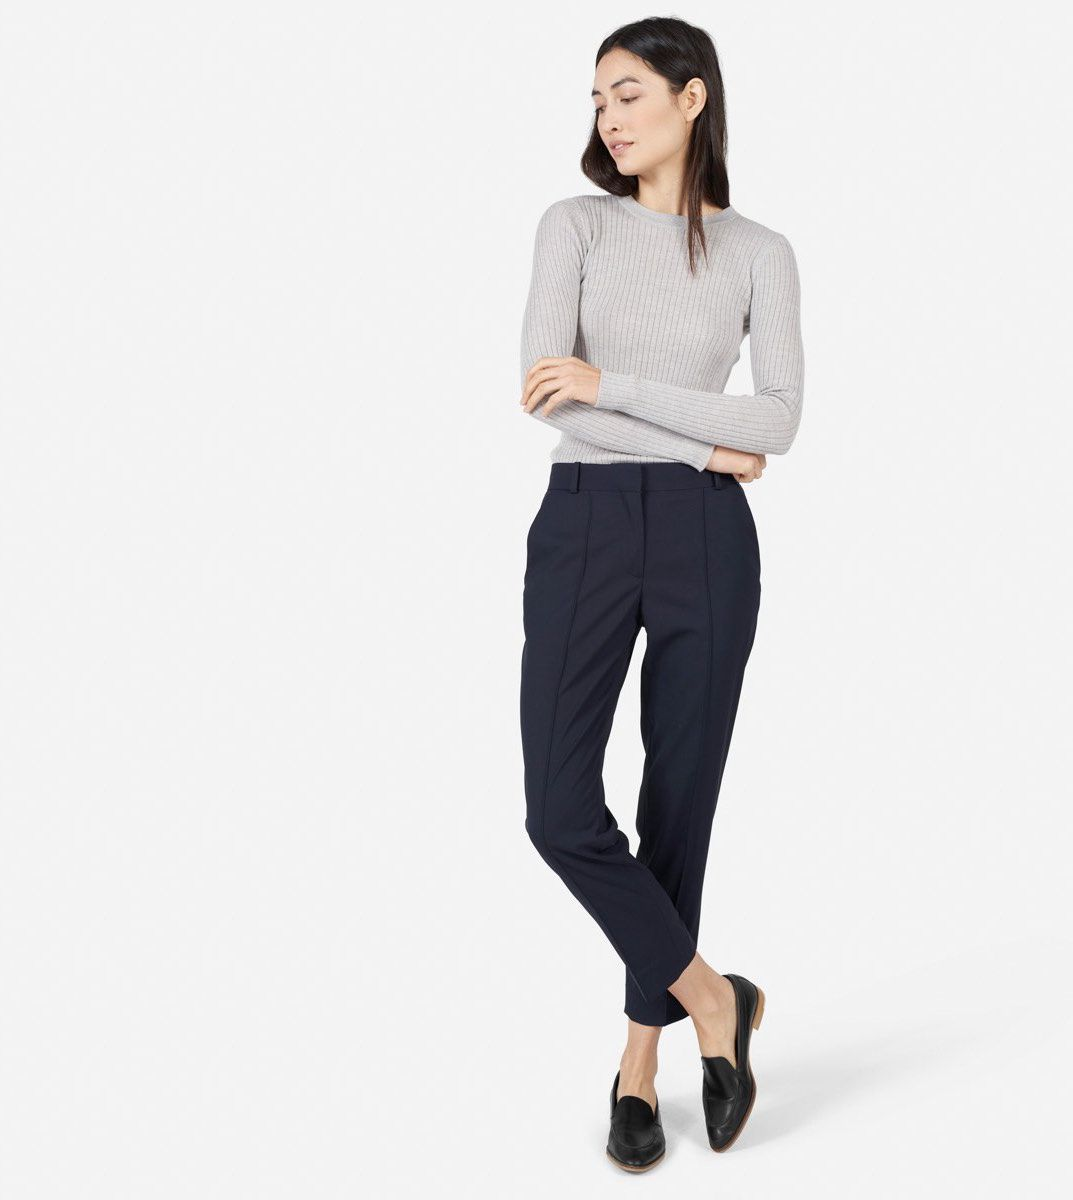 eae756d934d A model wearing Everlane s cropped navy trousers and a gray sweater